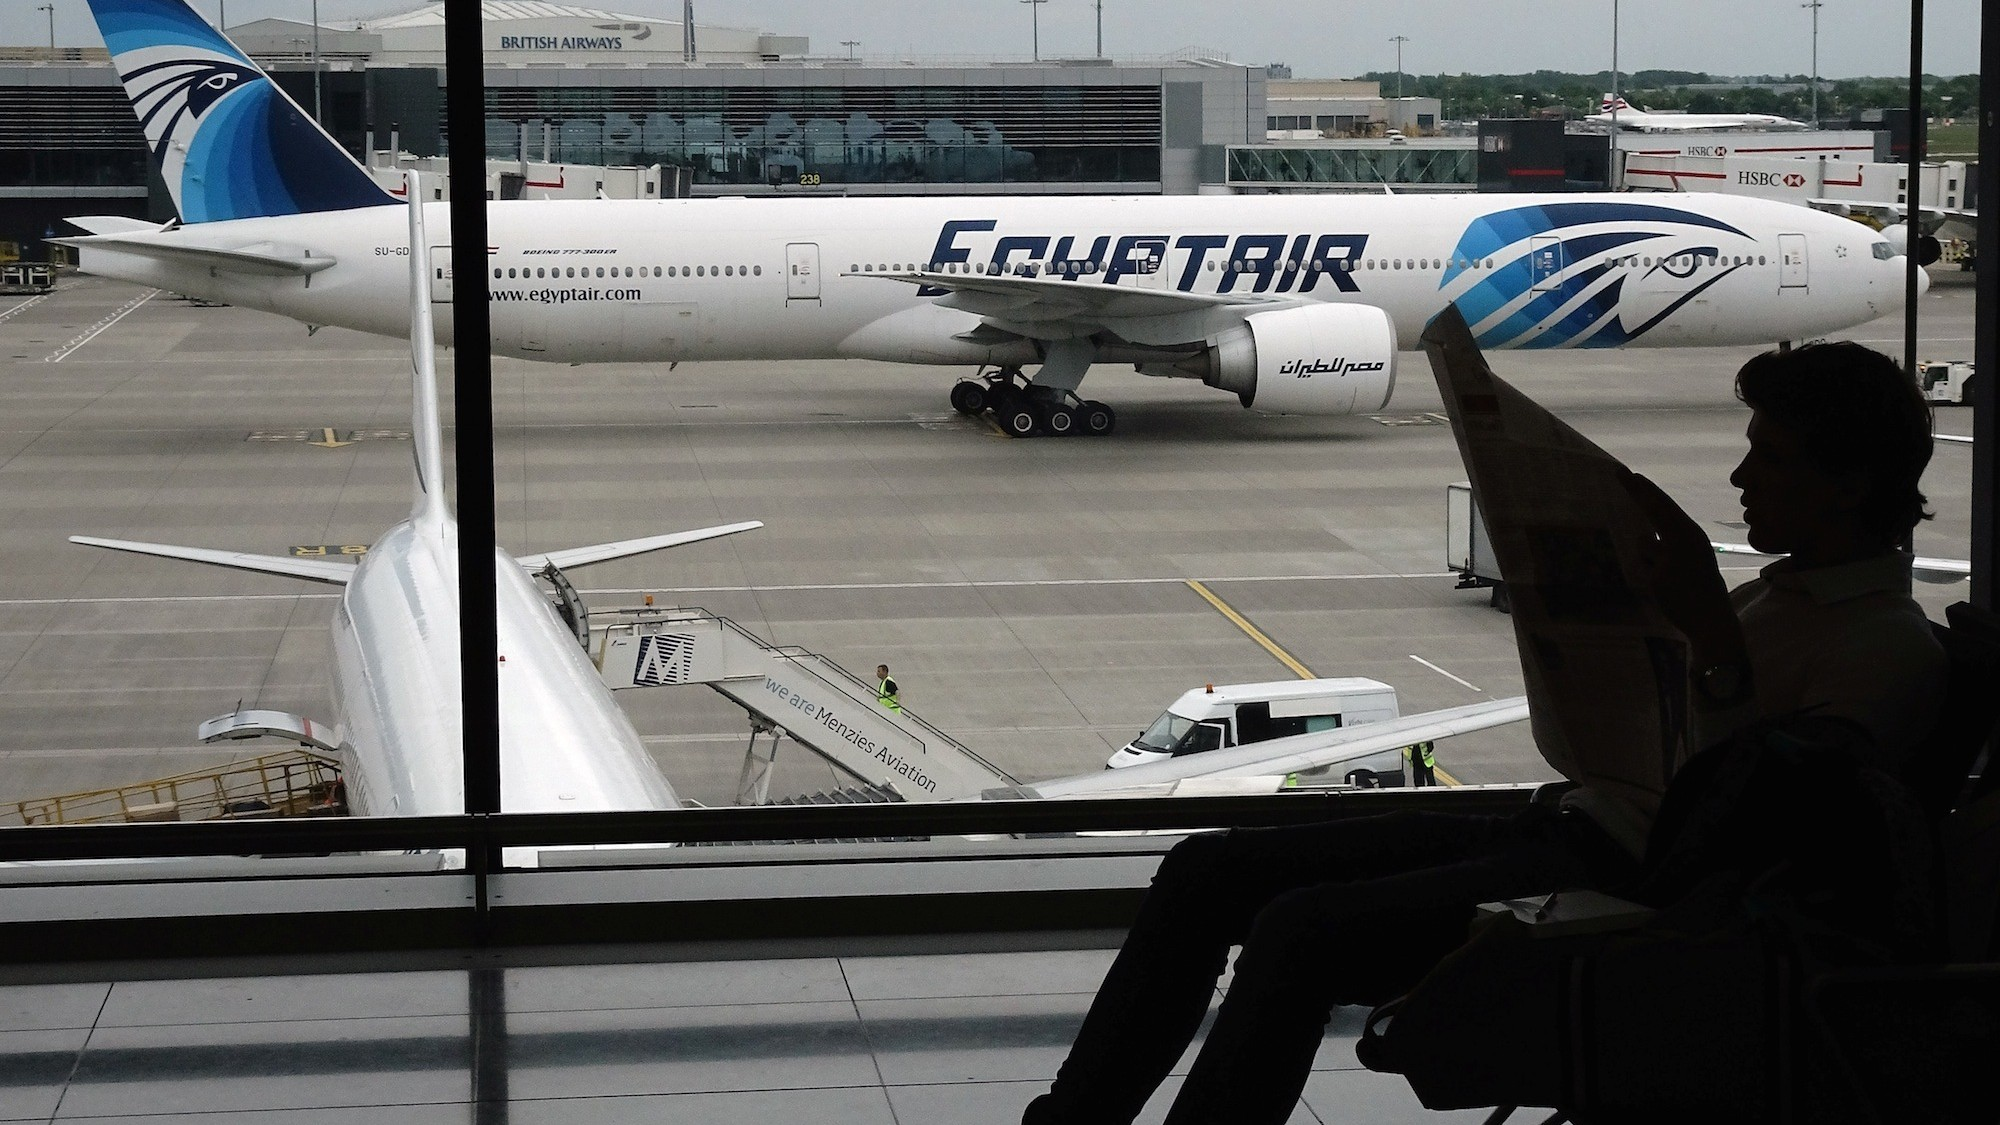 Islamic State Spokesman Speaks — But Remains Silent on EgyptAir Crash